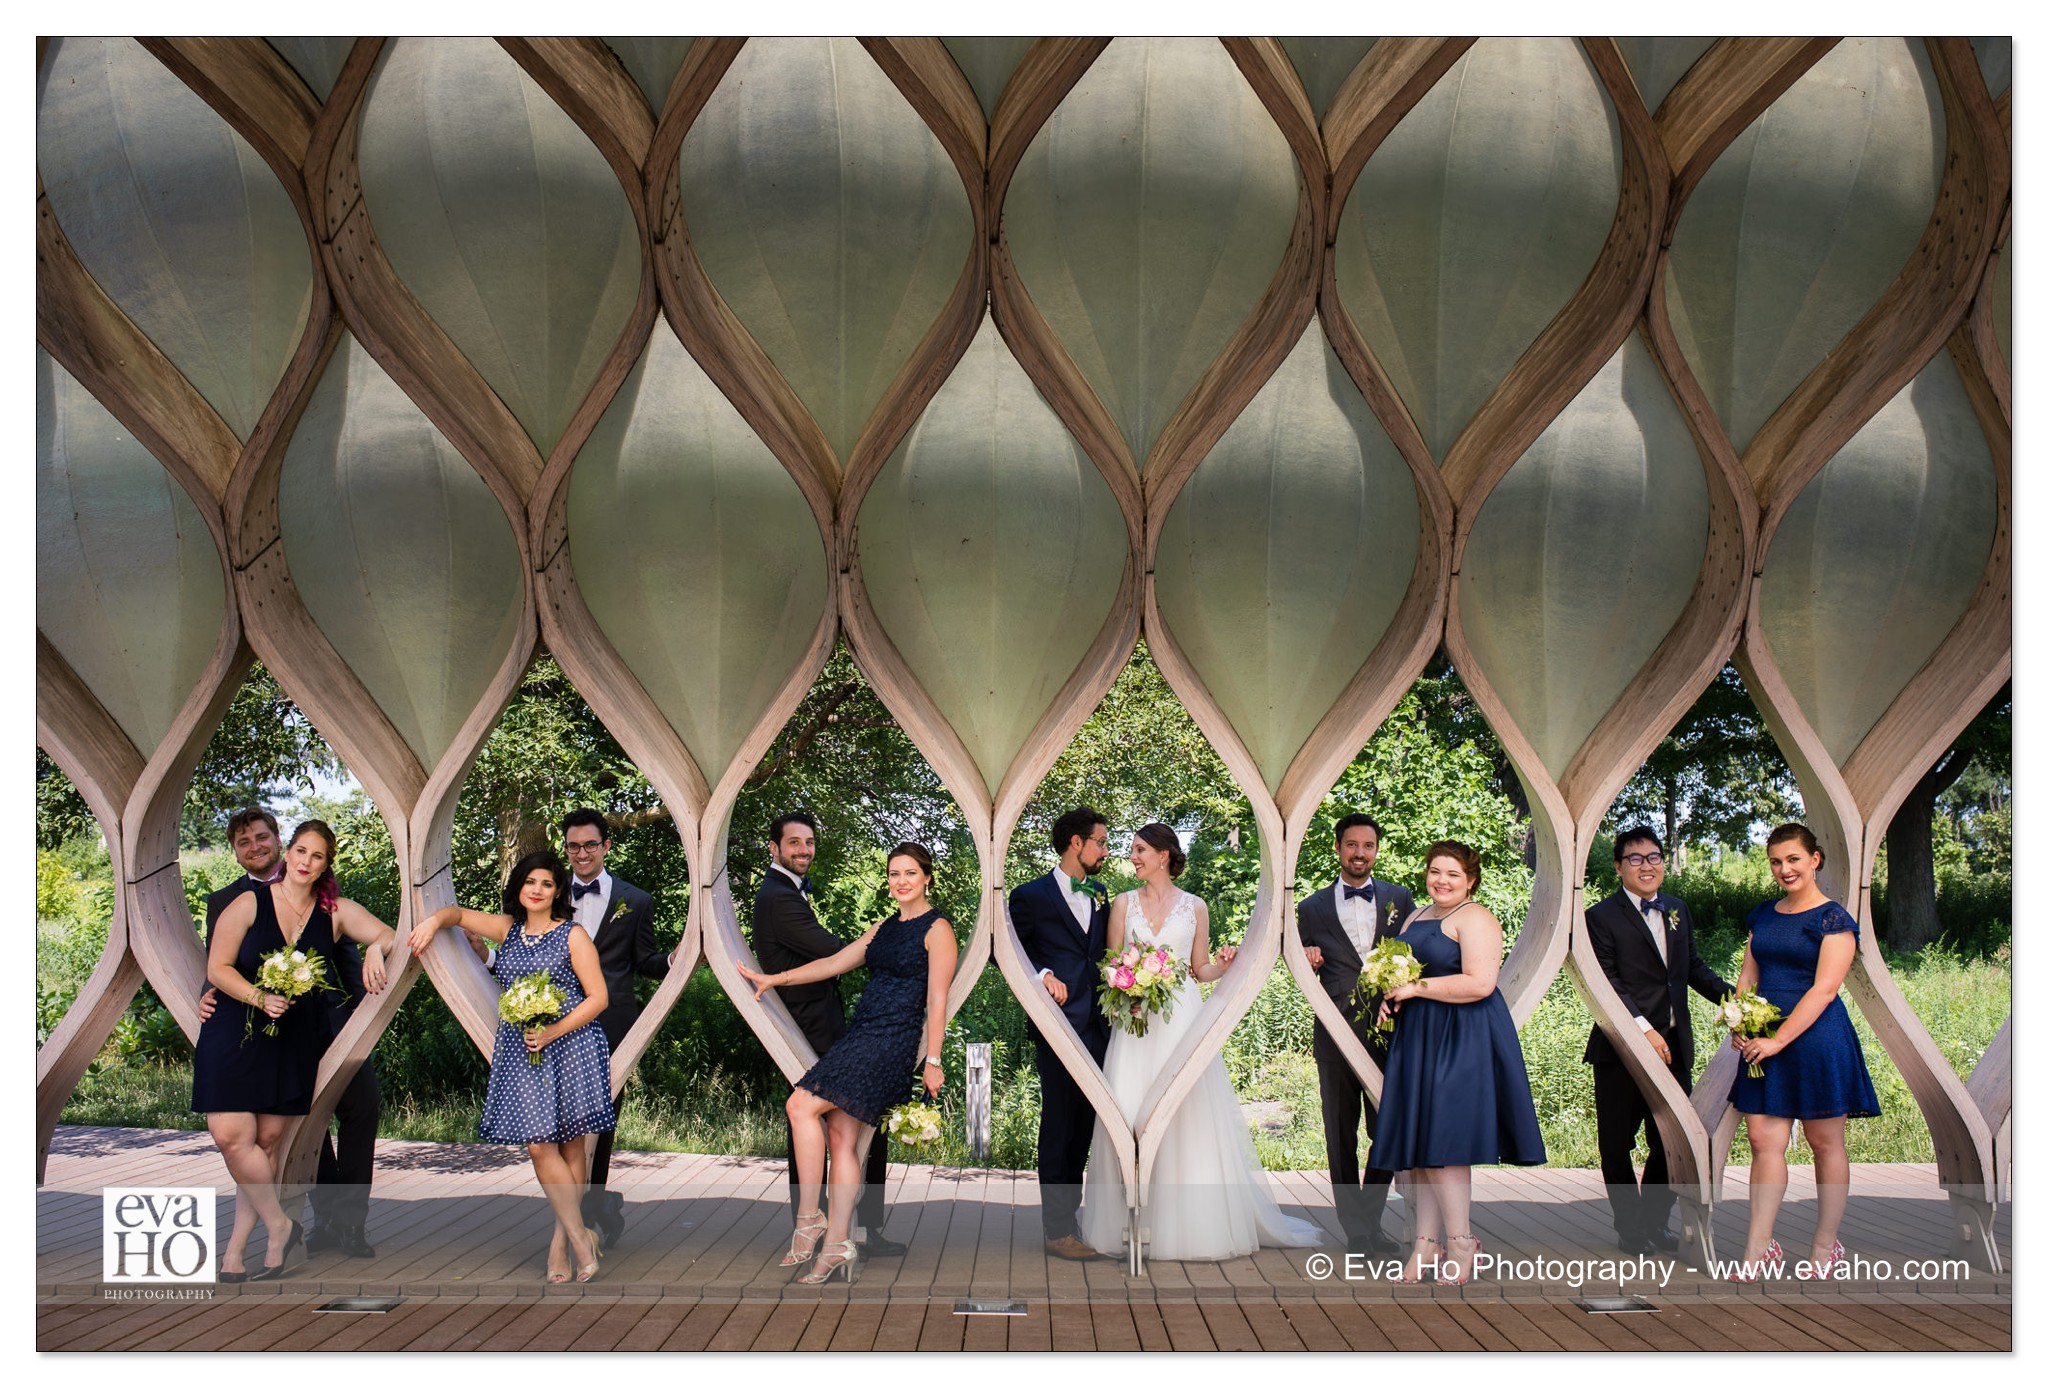 Honeycomb wedding party